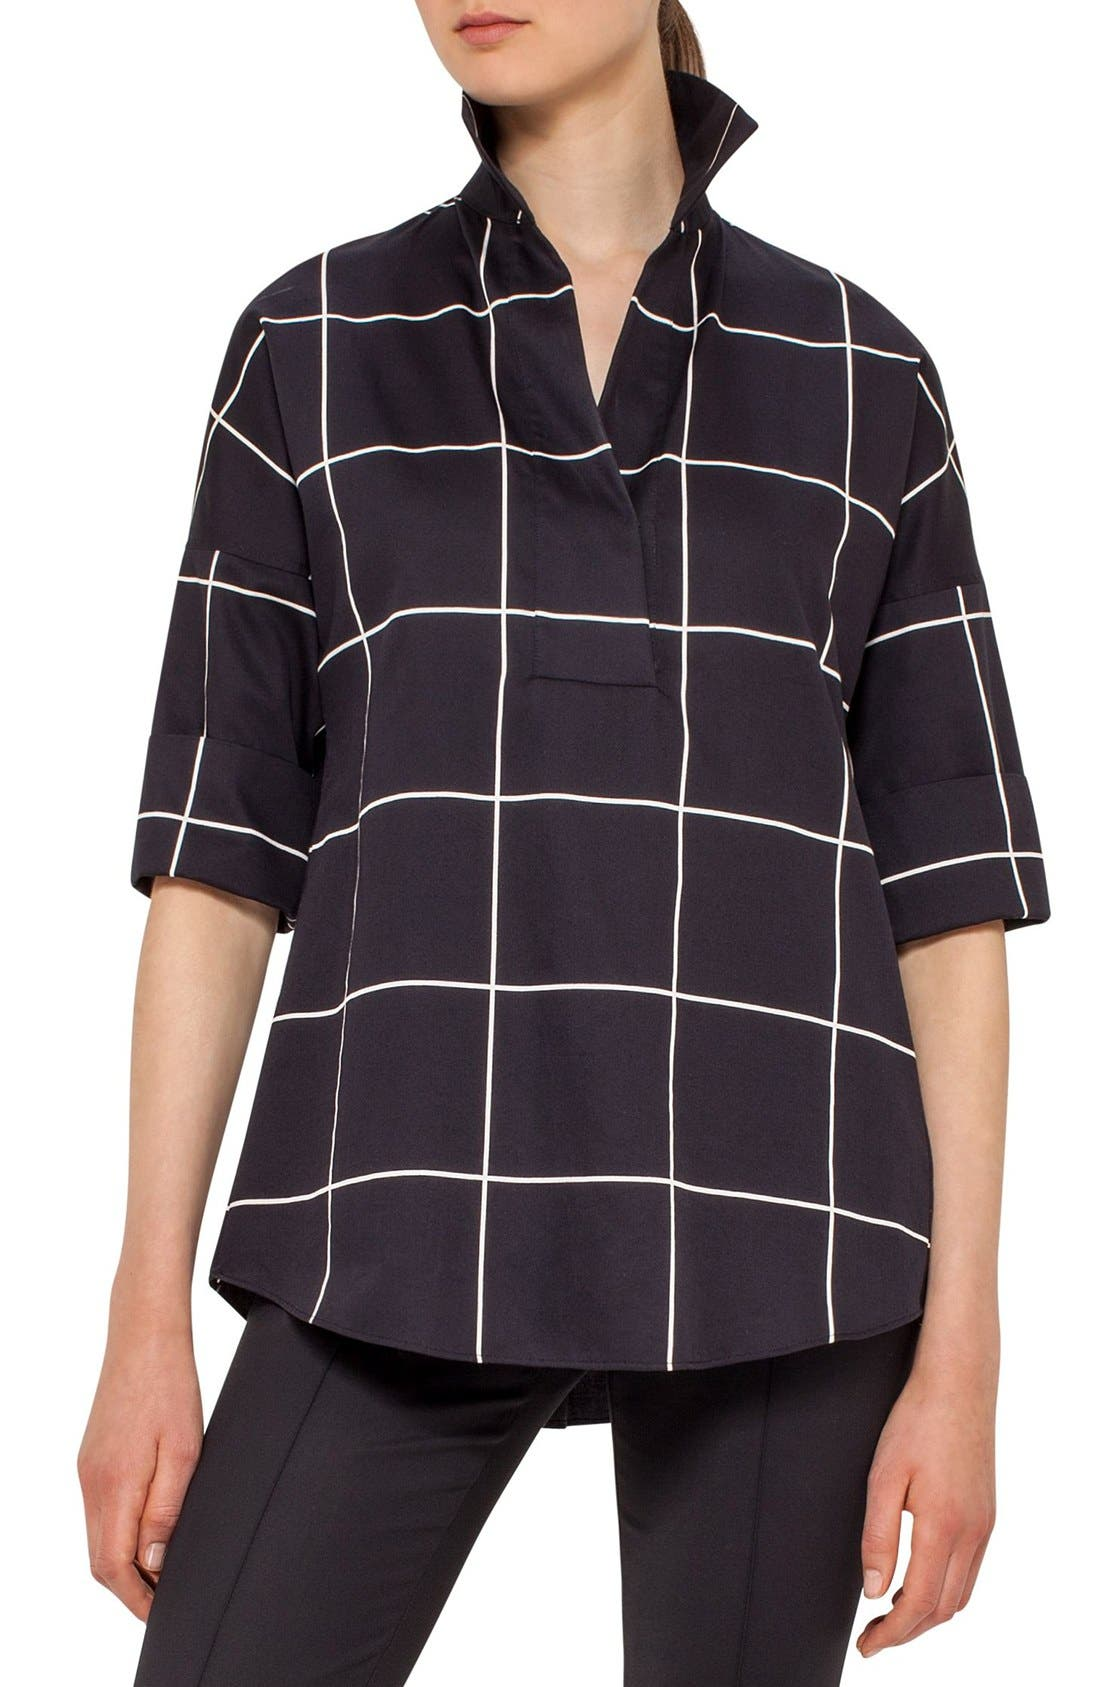 AKRIS PUNTO Windowpane Print Cotton Swing Top